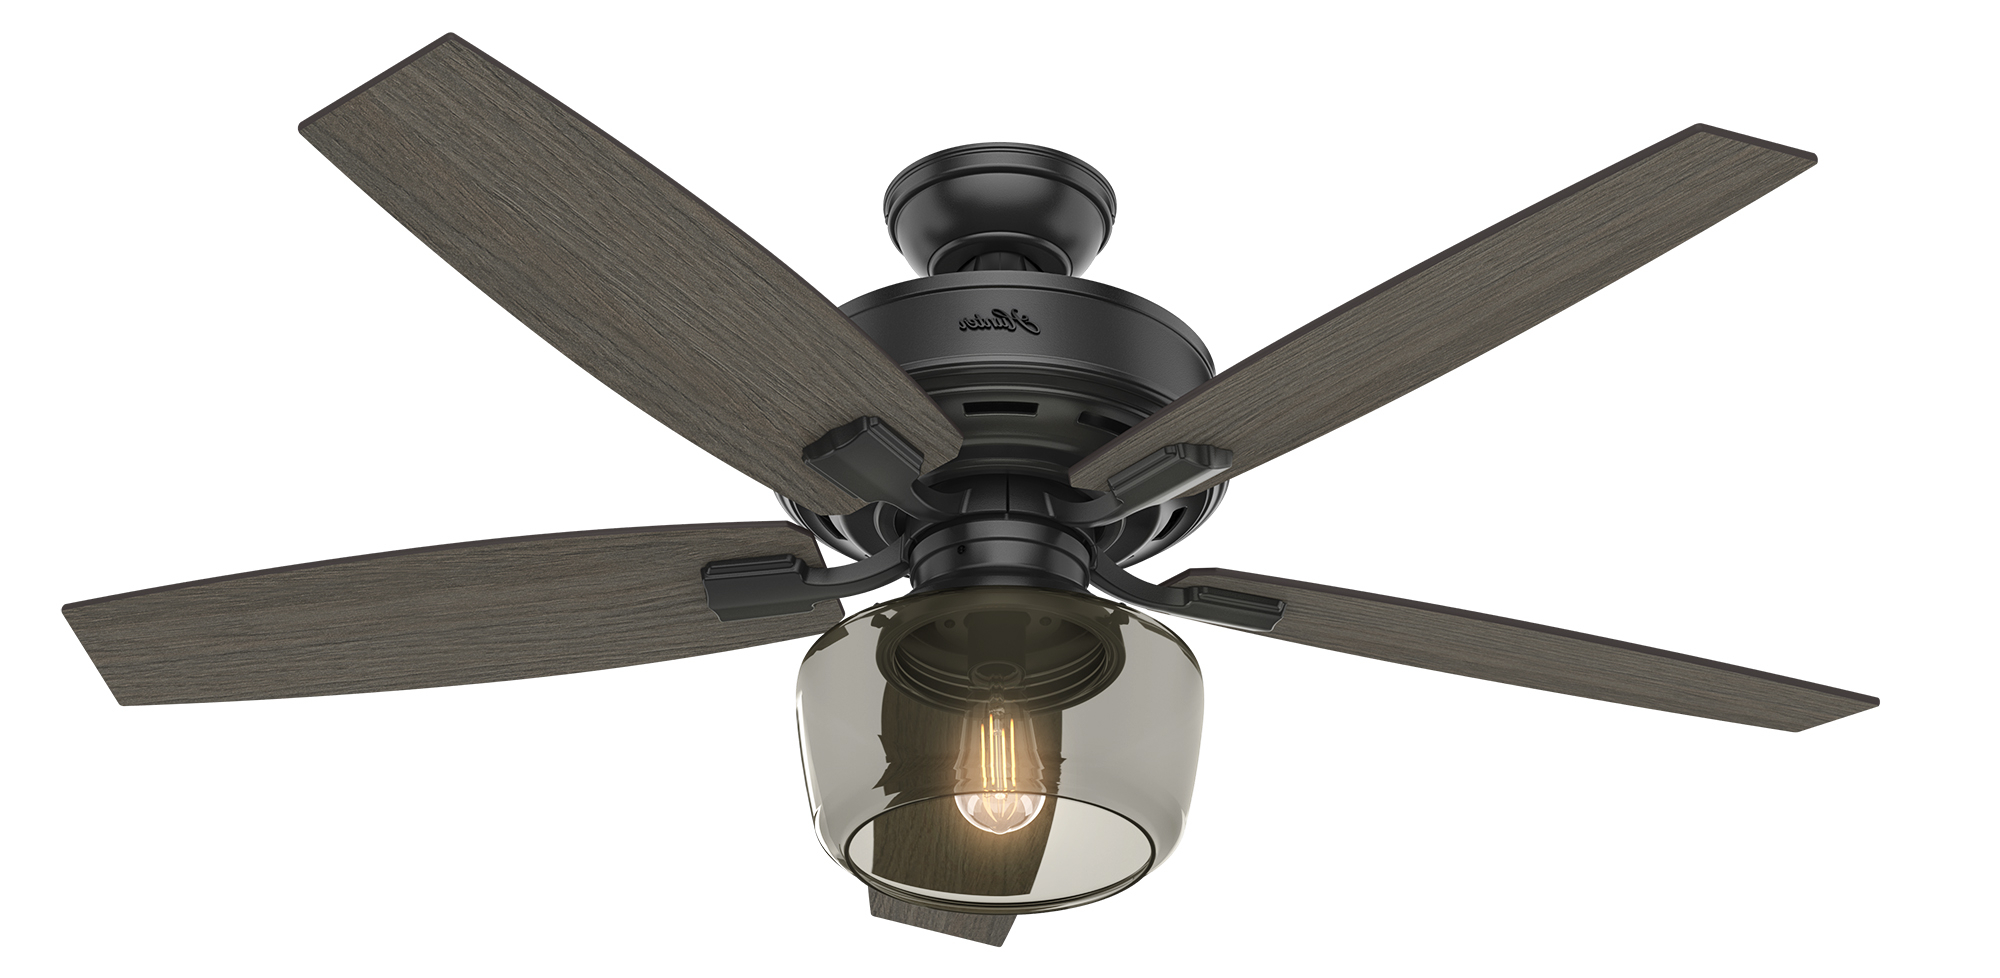 Hunter Fan Regarding Bennett 5 Blade Led Ceiling Fans With Remote (View 4 of 20)